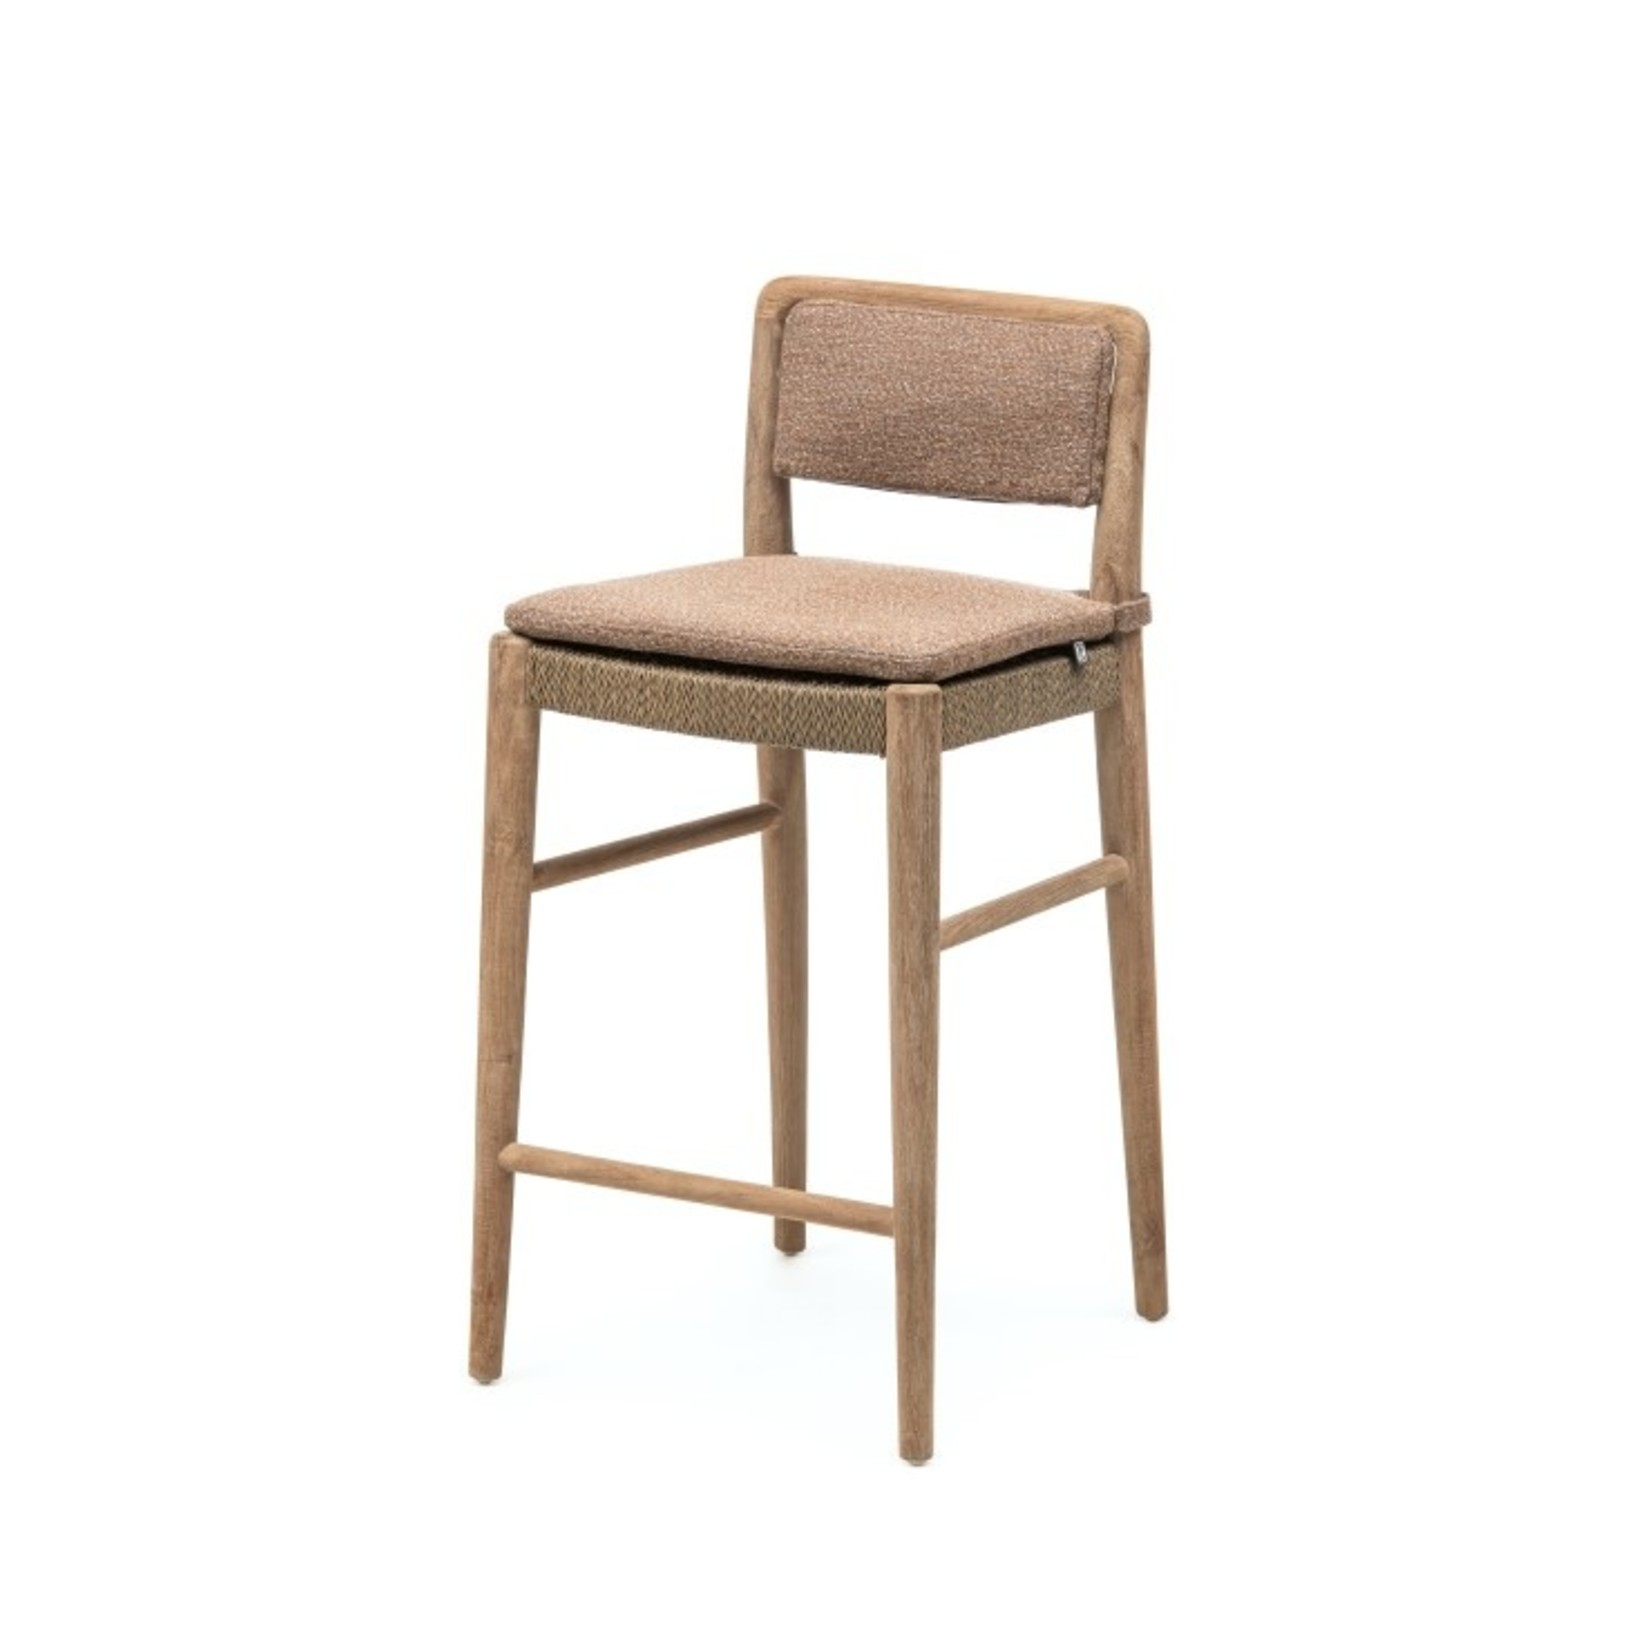 Gommaire Bar Chair Jared | Teak Natural Grey / PE Wicker Antique Weed